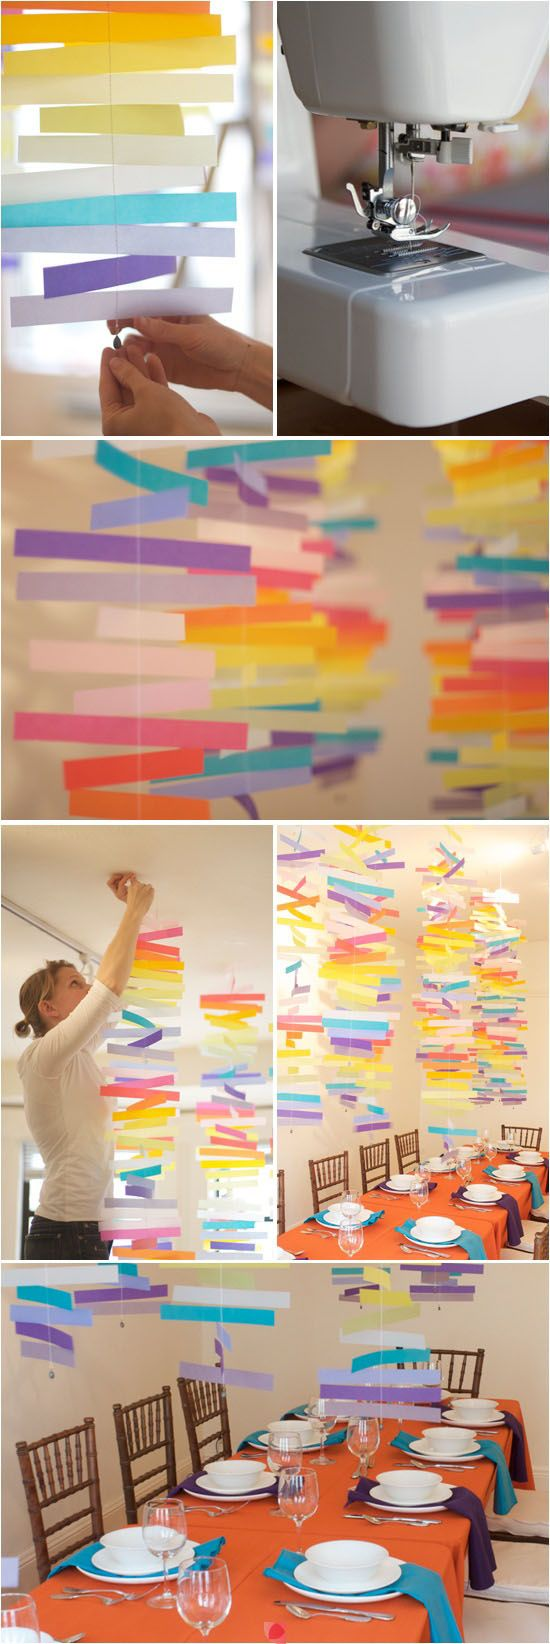 DIY Party Decorations diy crafts home made easy crafts craft idea crafts ideas diy ideas diy crafts diy idea do it yourself diy projects diy craft handmade sewing party crafts diy party ideas sewing ideas easy sewing